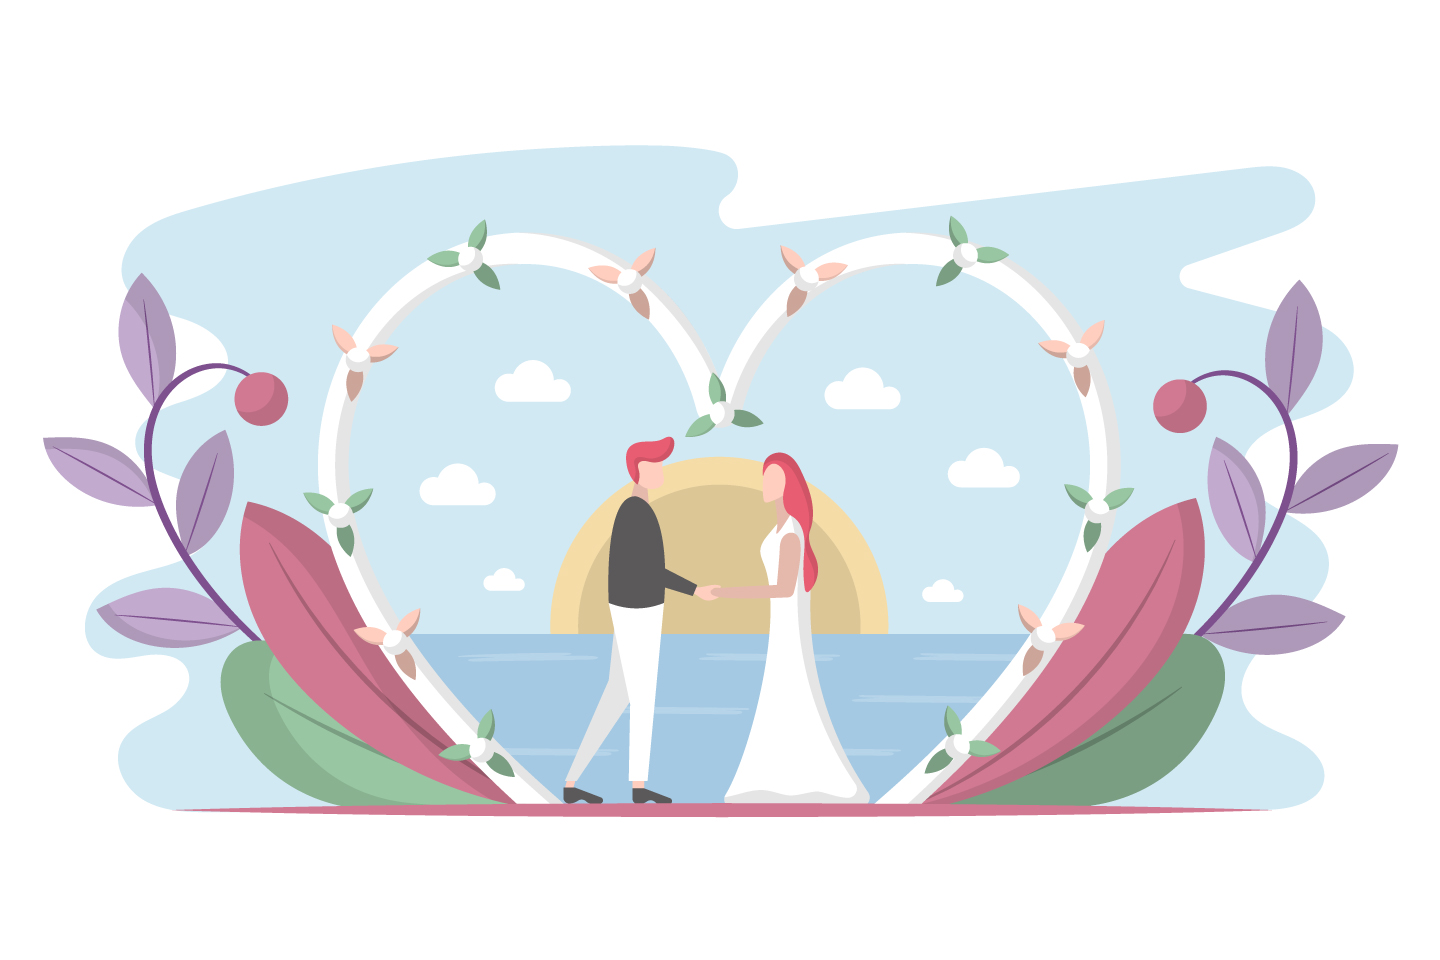 Heart Wedding Composition with Bride and Groom Concept